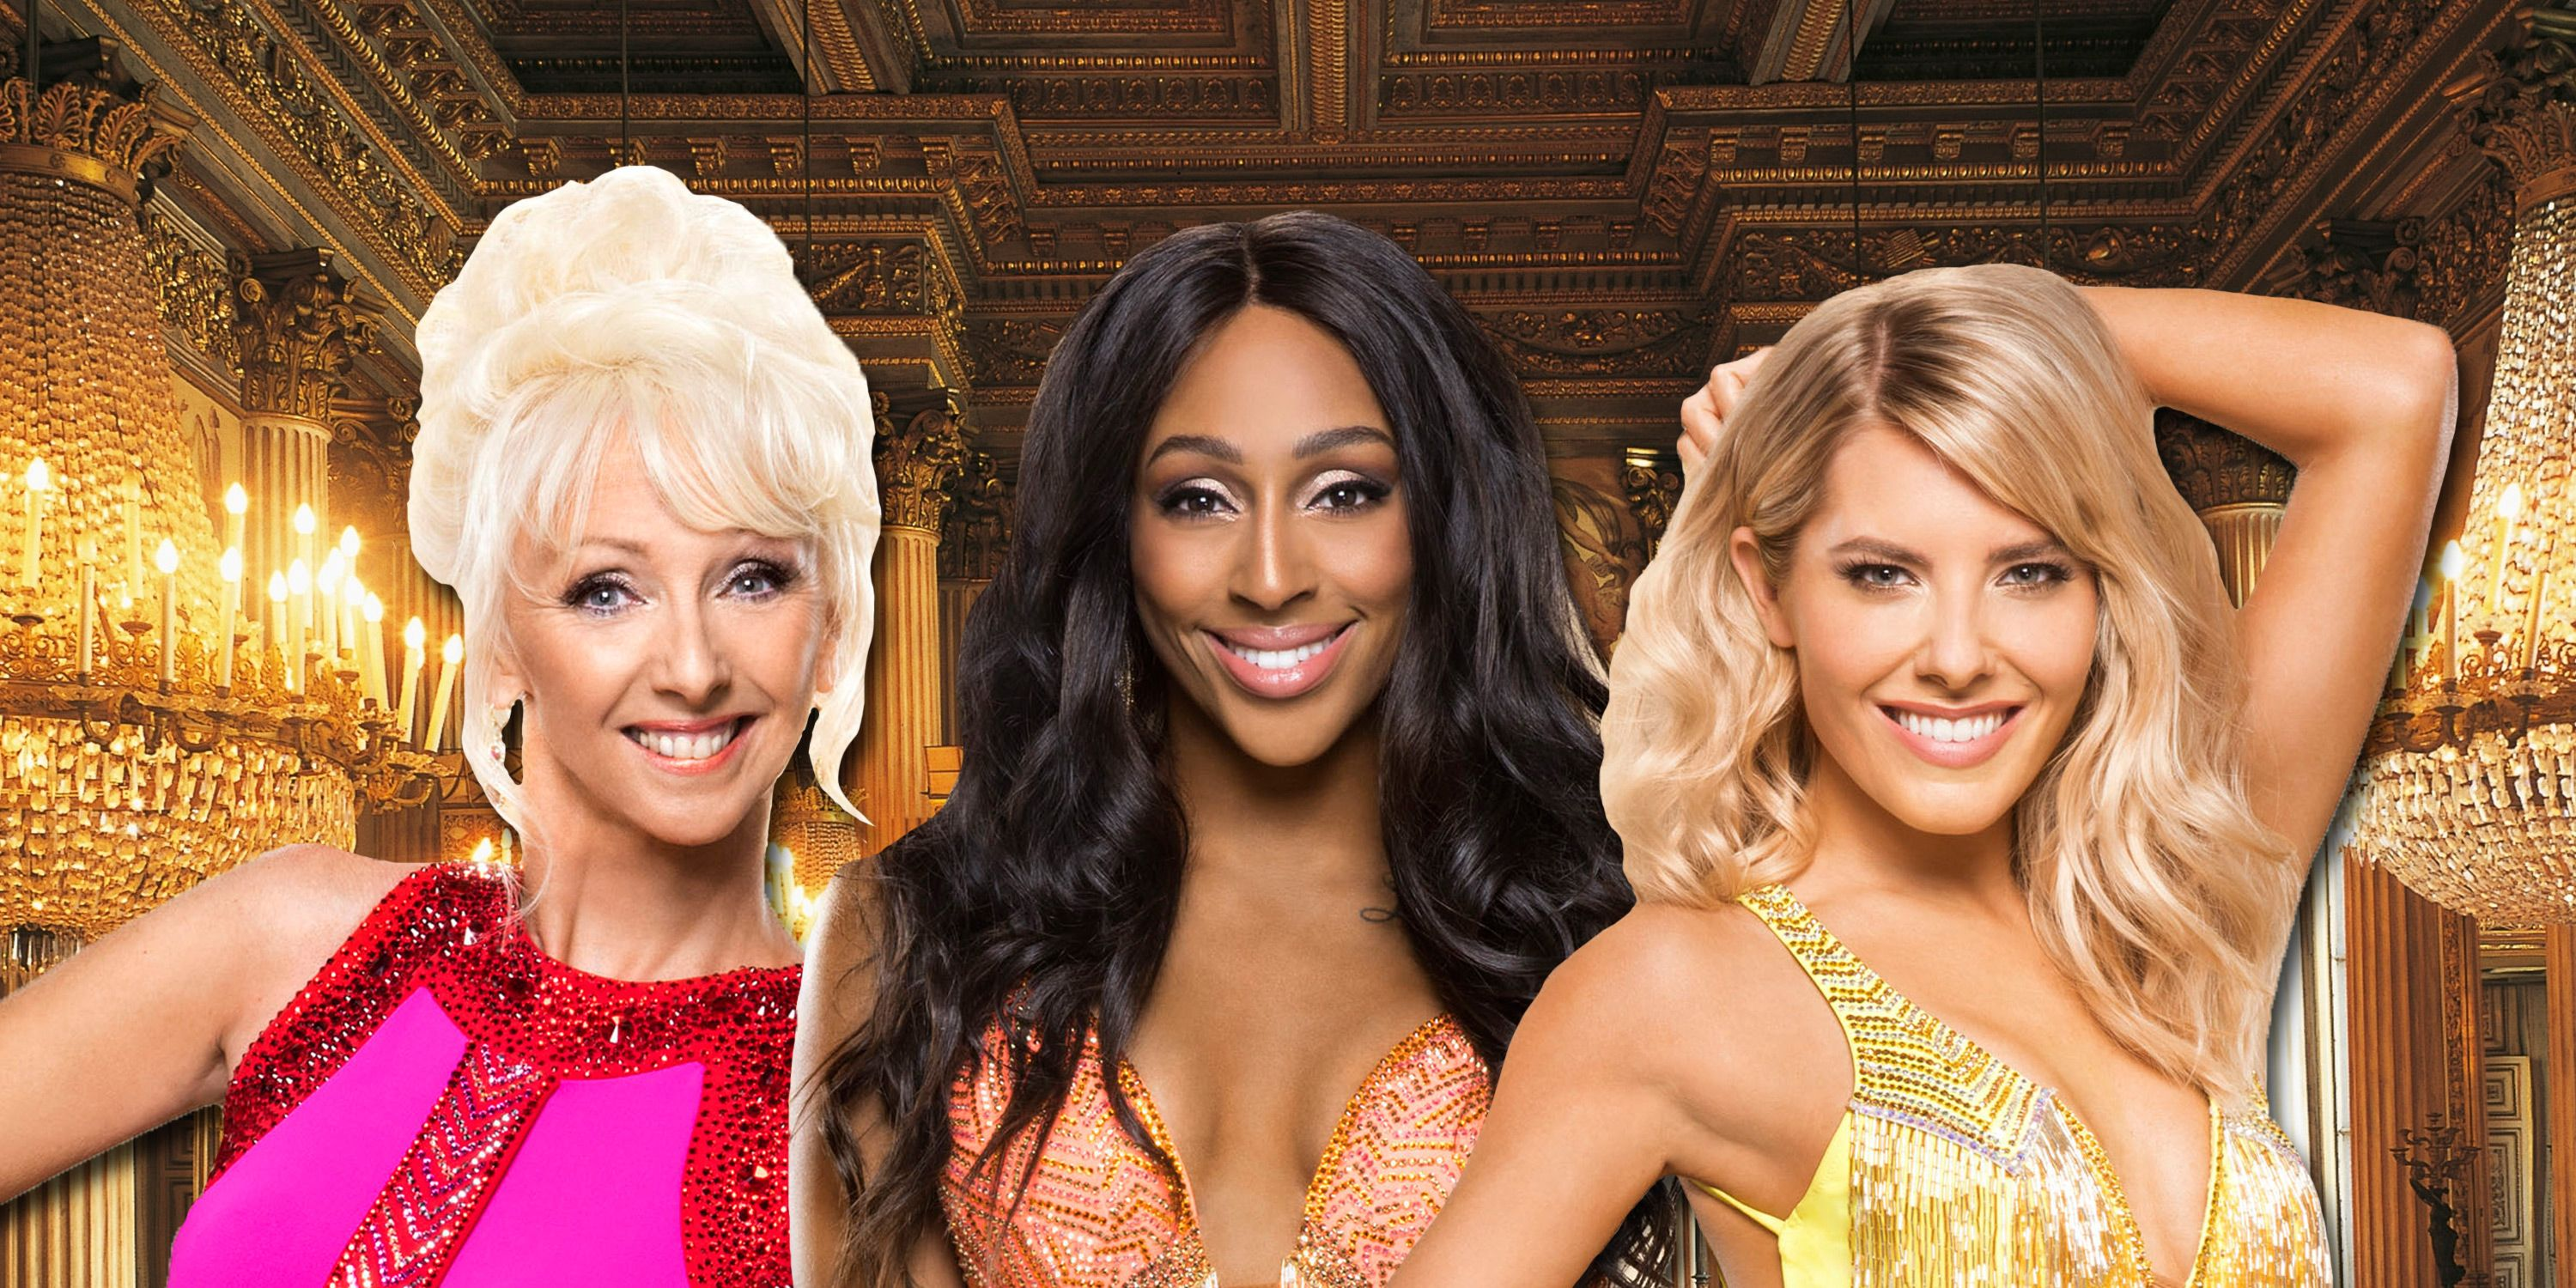 EMBARGO until 6:45pm on Tuesday 7th November, Debbie McGee, Alexandra Burke, Mollie King, Strictly Come Dancing